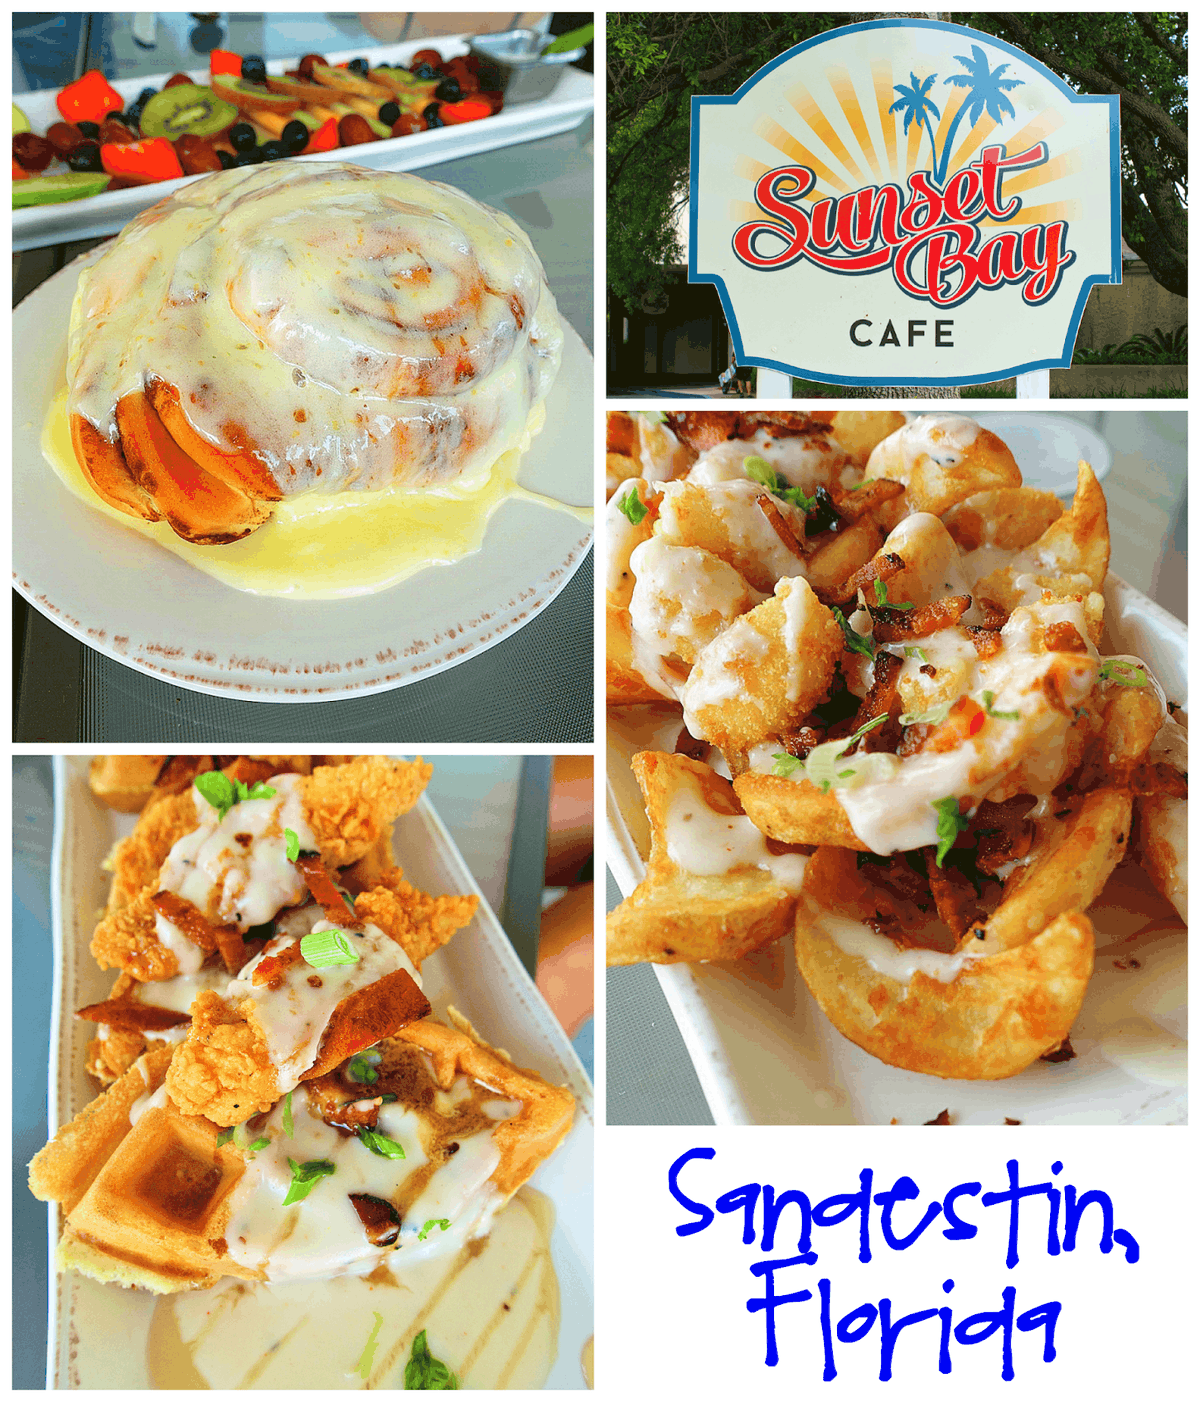 Sunset Bay Cafe  - Sandestin Golf and Beach Resort - this place is not to be missed. The food is amazing! You have to get the Southern Fries and Cinnamon Roll!